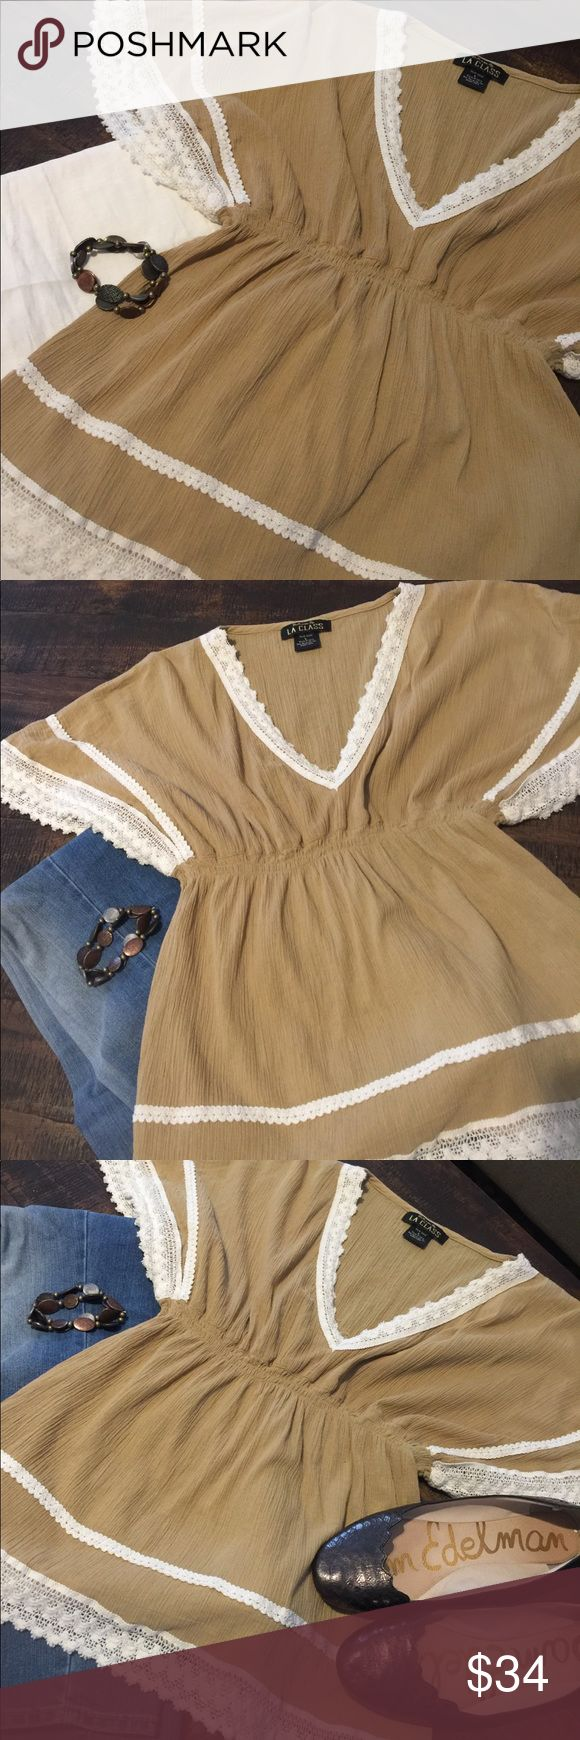 Cute, V neck top💥NWOT💥reduced Really cute, tan, V neck top with cream lace embellishments around sleeves, neckline, & bottom. Empire waist. Size is large, but definitely more like a medium fit. NWOT-never worn. Smoke free home. LA CLASS Tops